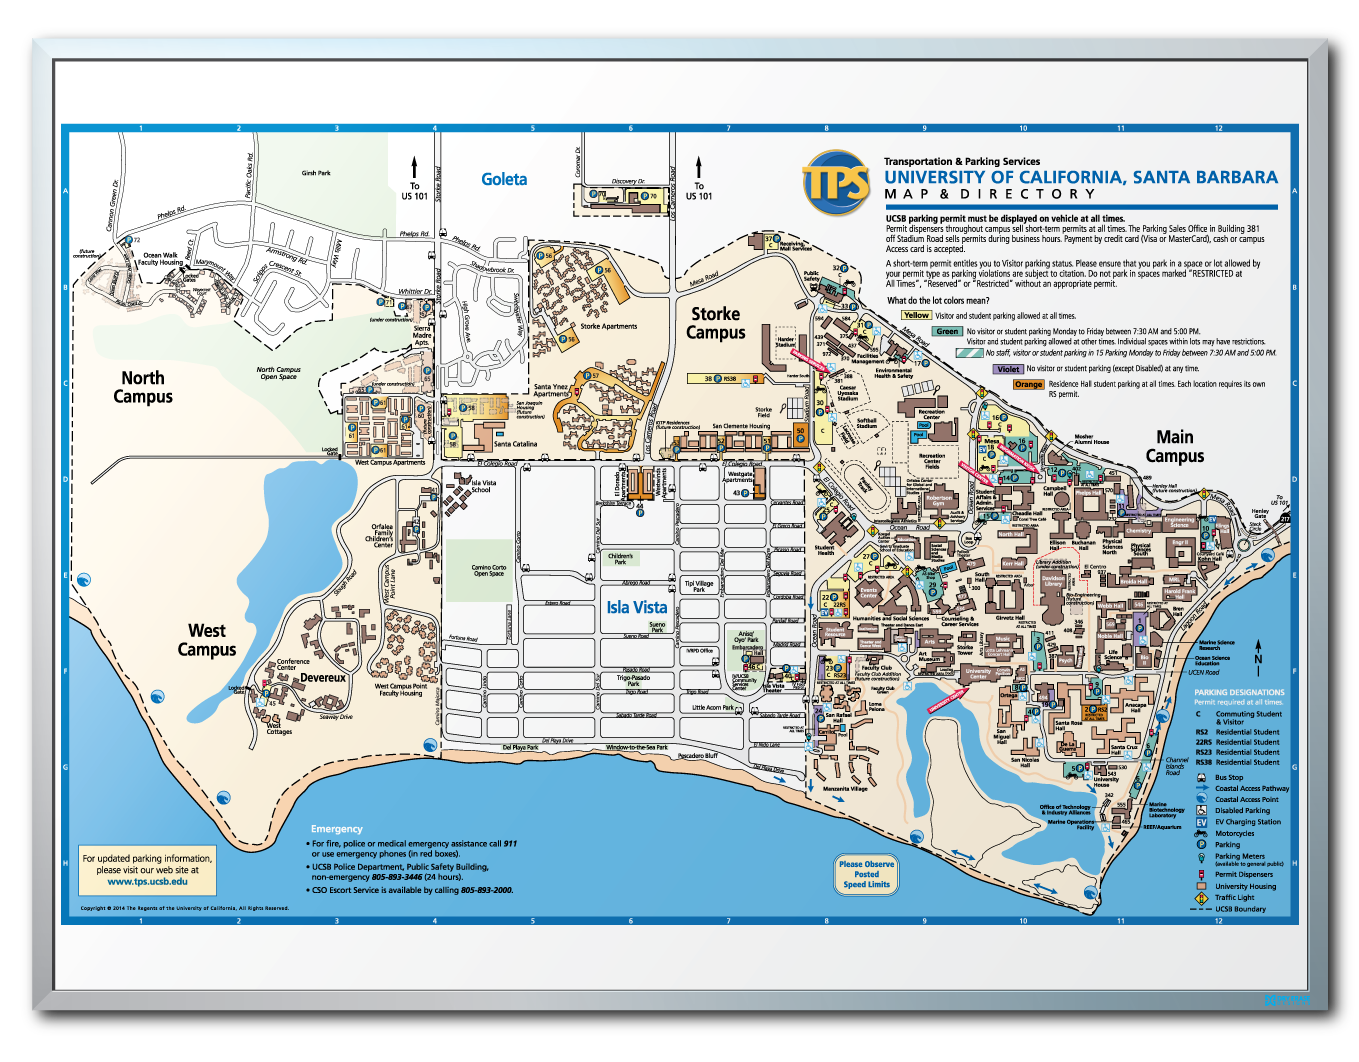 Uc Santa Barbara Campus Map Dry Erase Board Campus Map Uc Santa Barbara University Of California